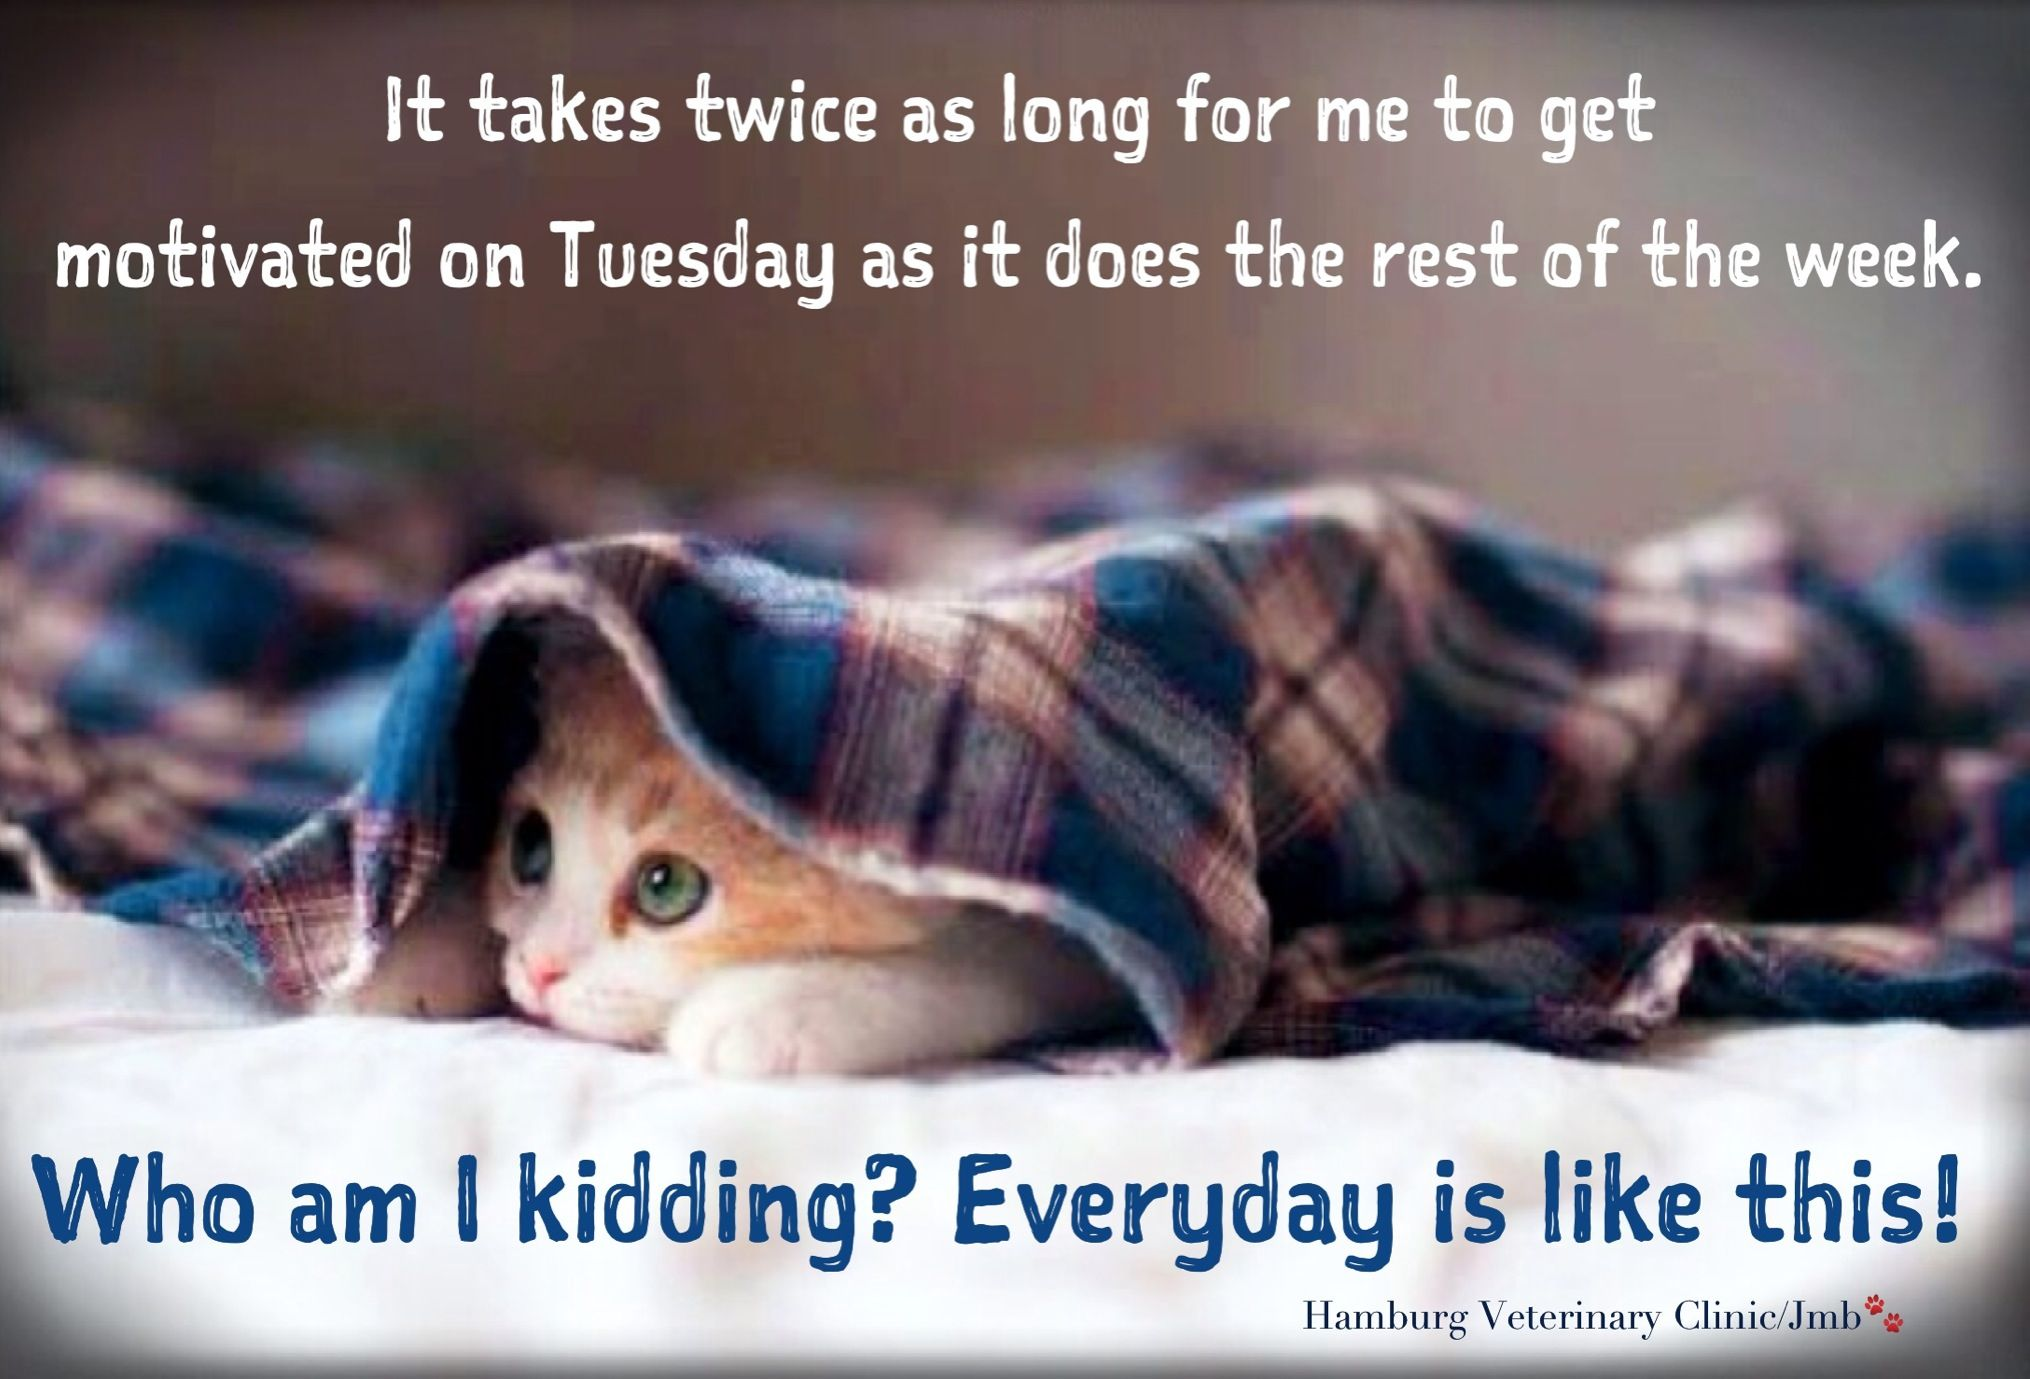 Ideas For Humor Tuesday Funny Life Funny Cute Cats, Funny Love, Funny Animals, Cute Quotes, Funny Quotes, Funny Memes, Life Humor, Man Humor, Tips